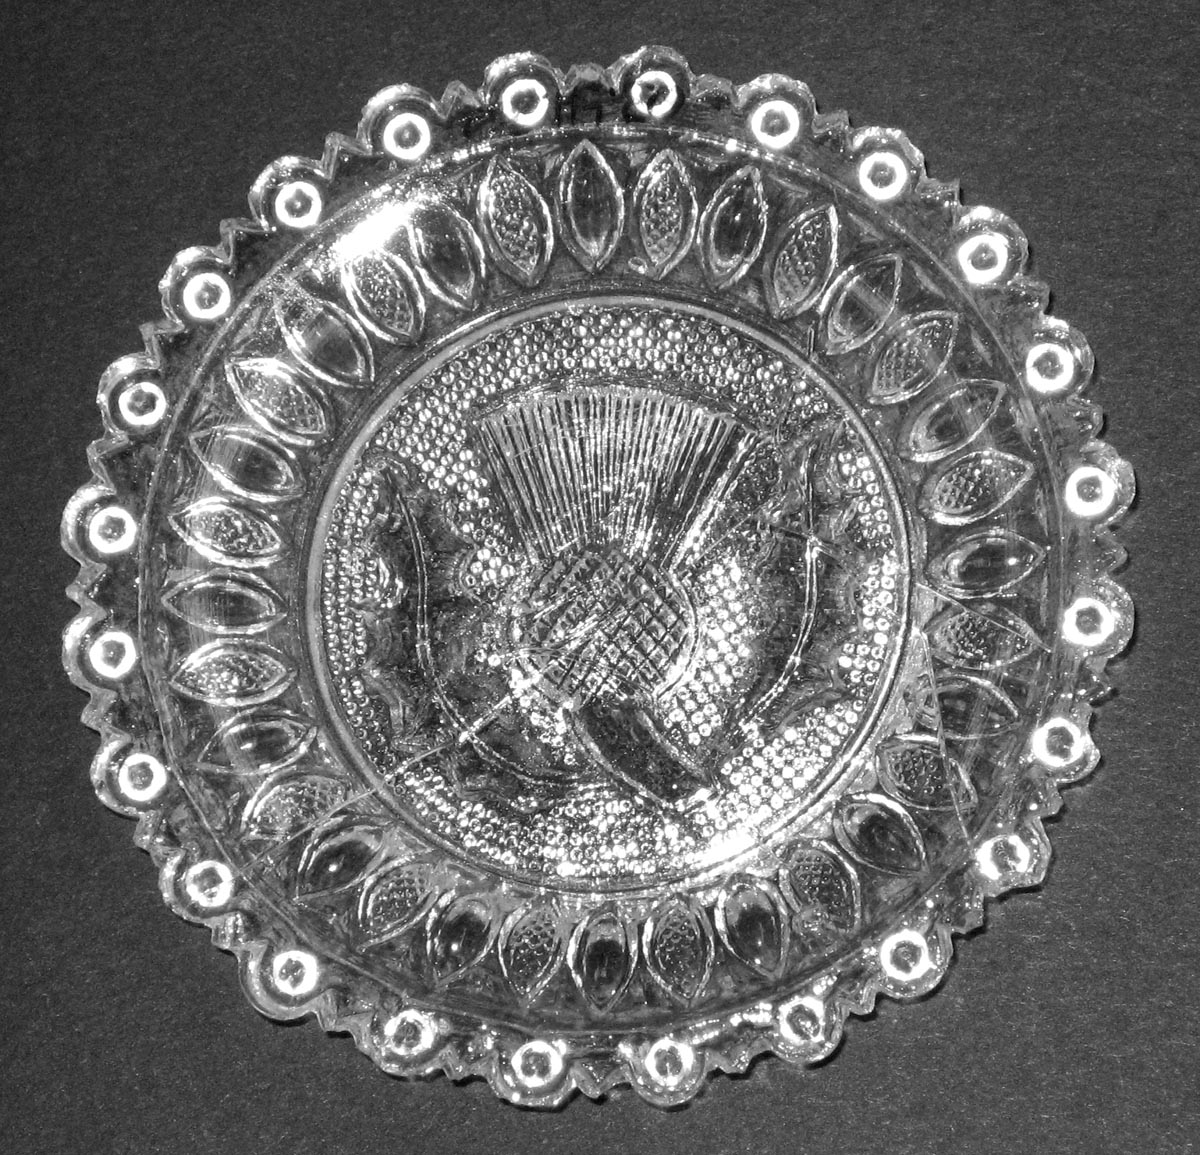 2003.0041.020 Thistle glass cup plate